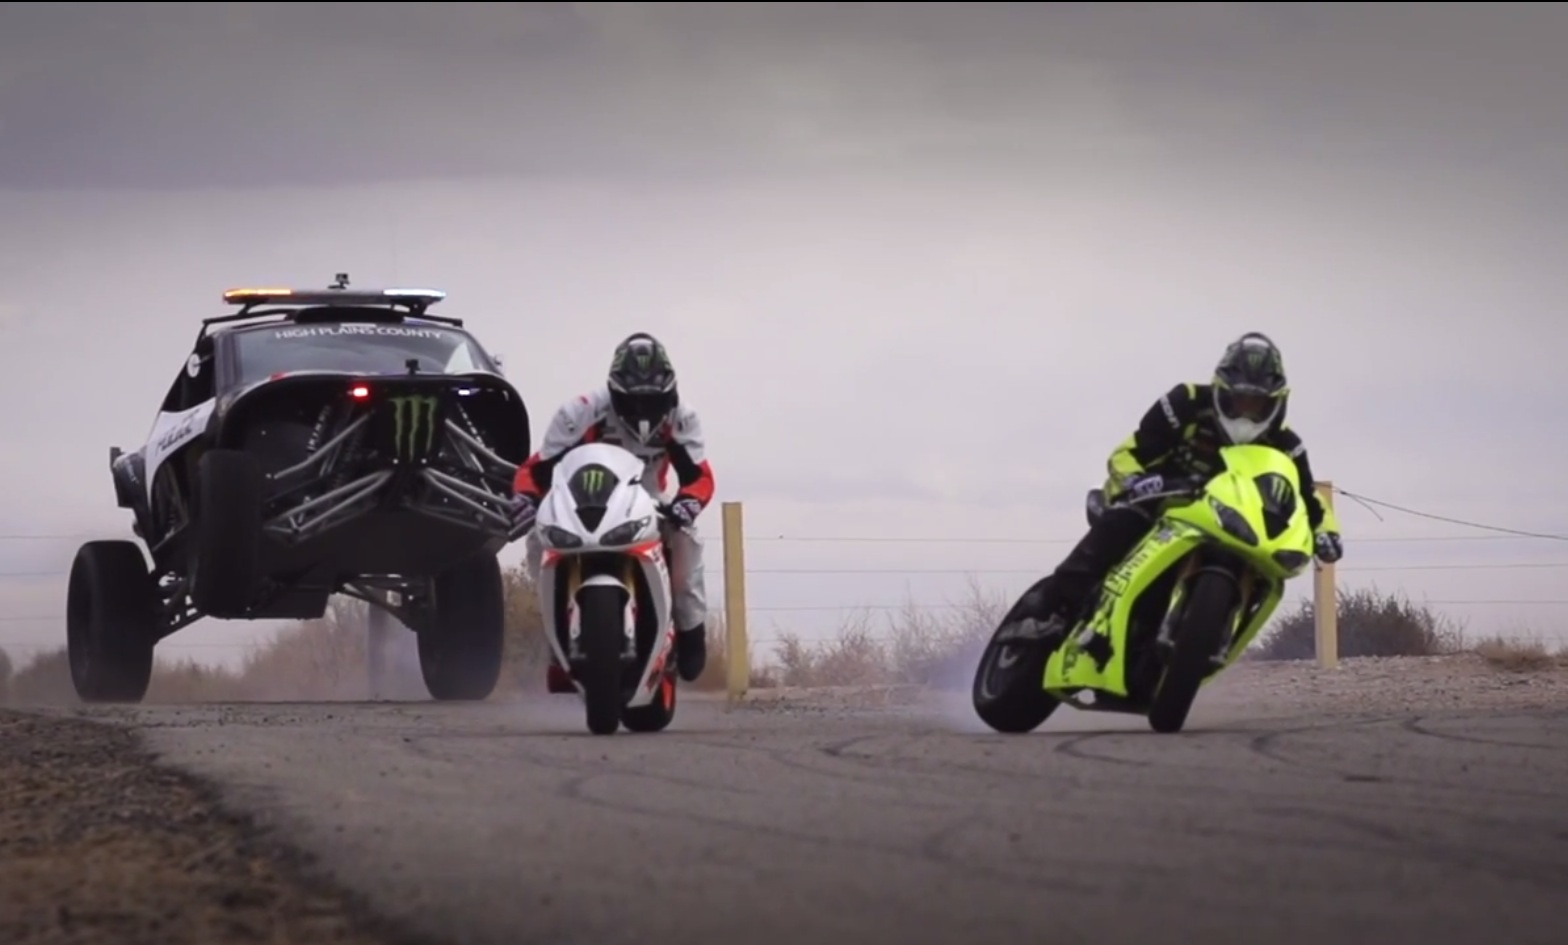 cars vs motorcycles Reviewing the safety statistics surrounding motorcycles are automobiles provides an accurate account of just how much more dangerous motorcycles can be than.